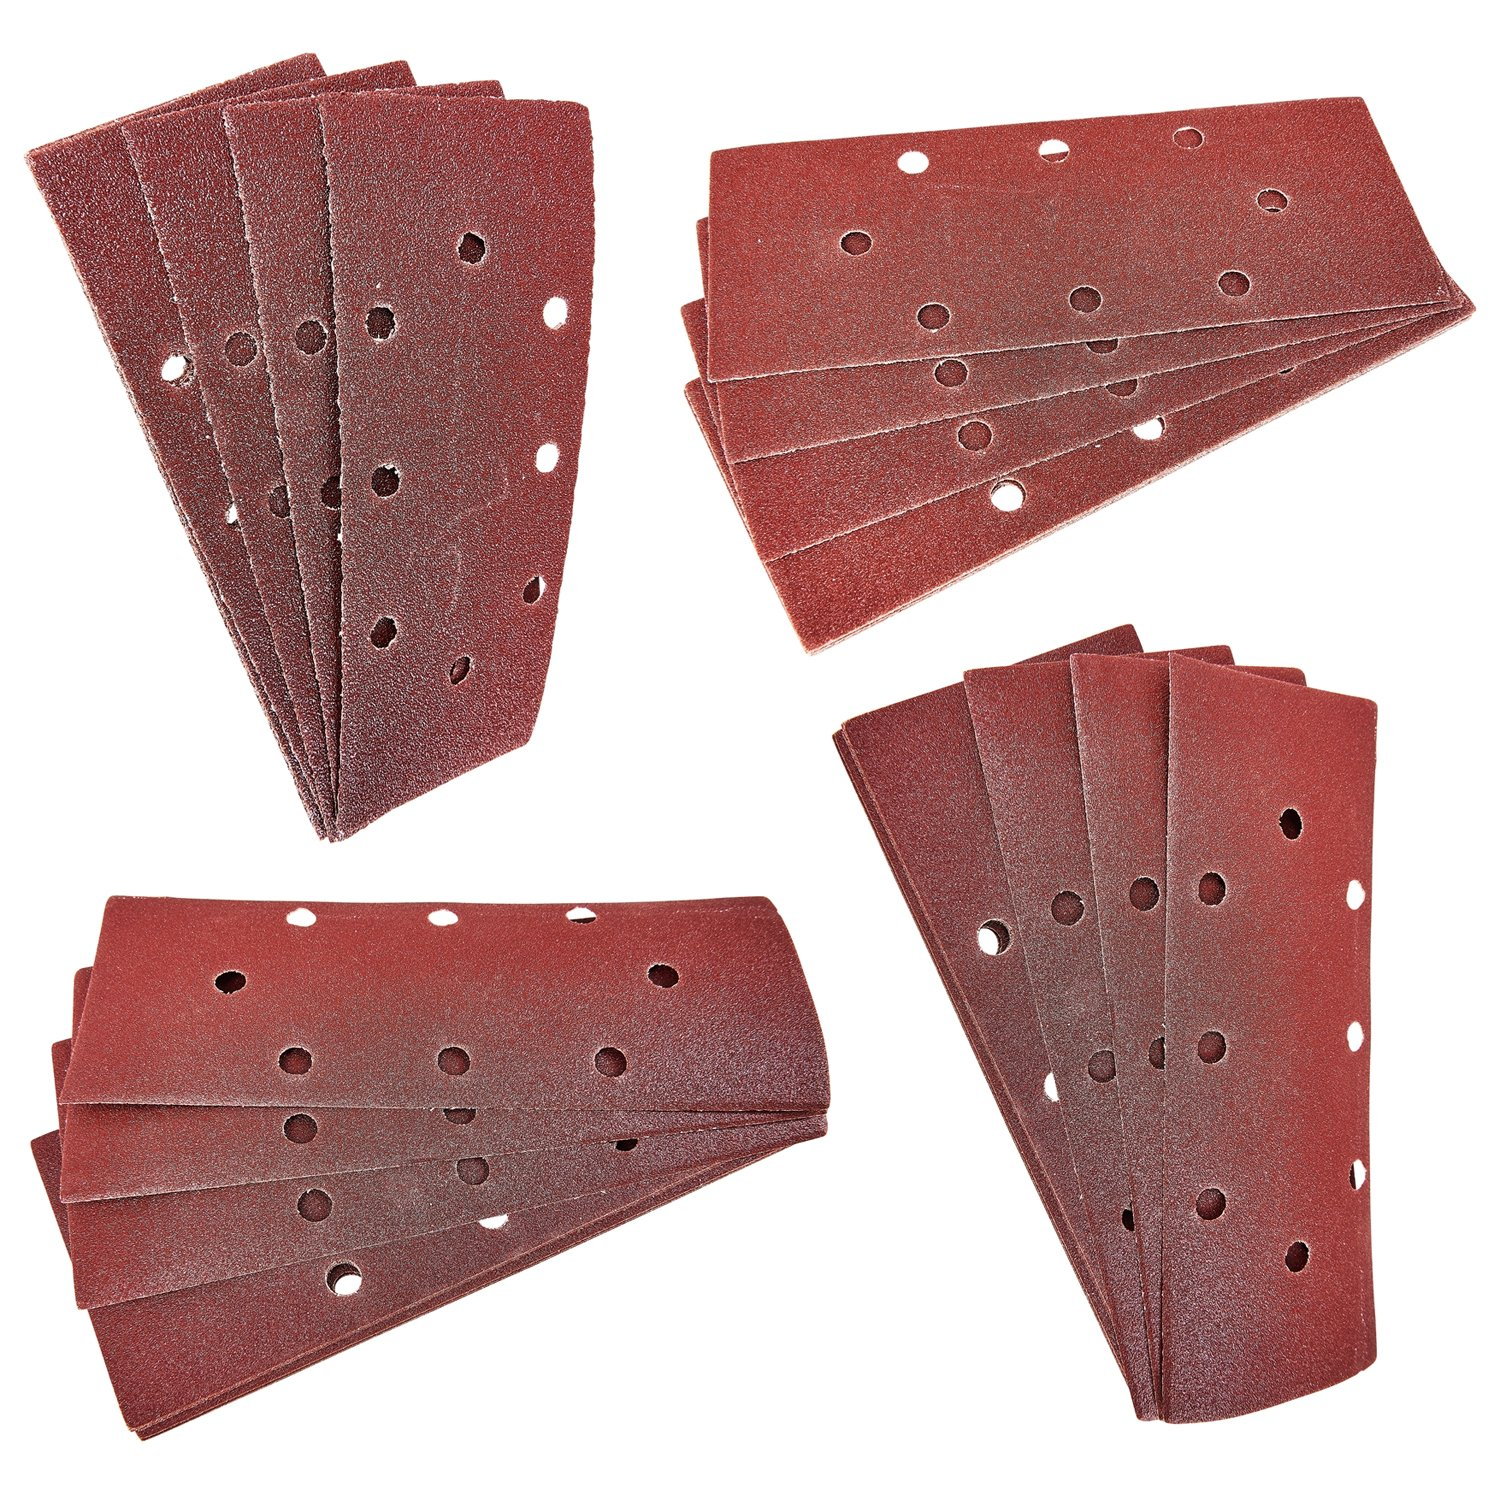 40 Pack Amtech 1/3 93x230mm Sanding Sheets 60g 80g 120g 240g Hook & Loop 3 Year Warranty Tooltime®